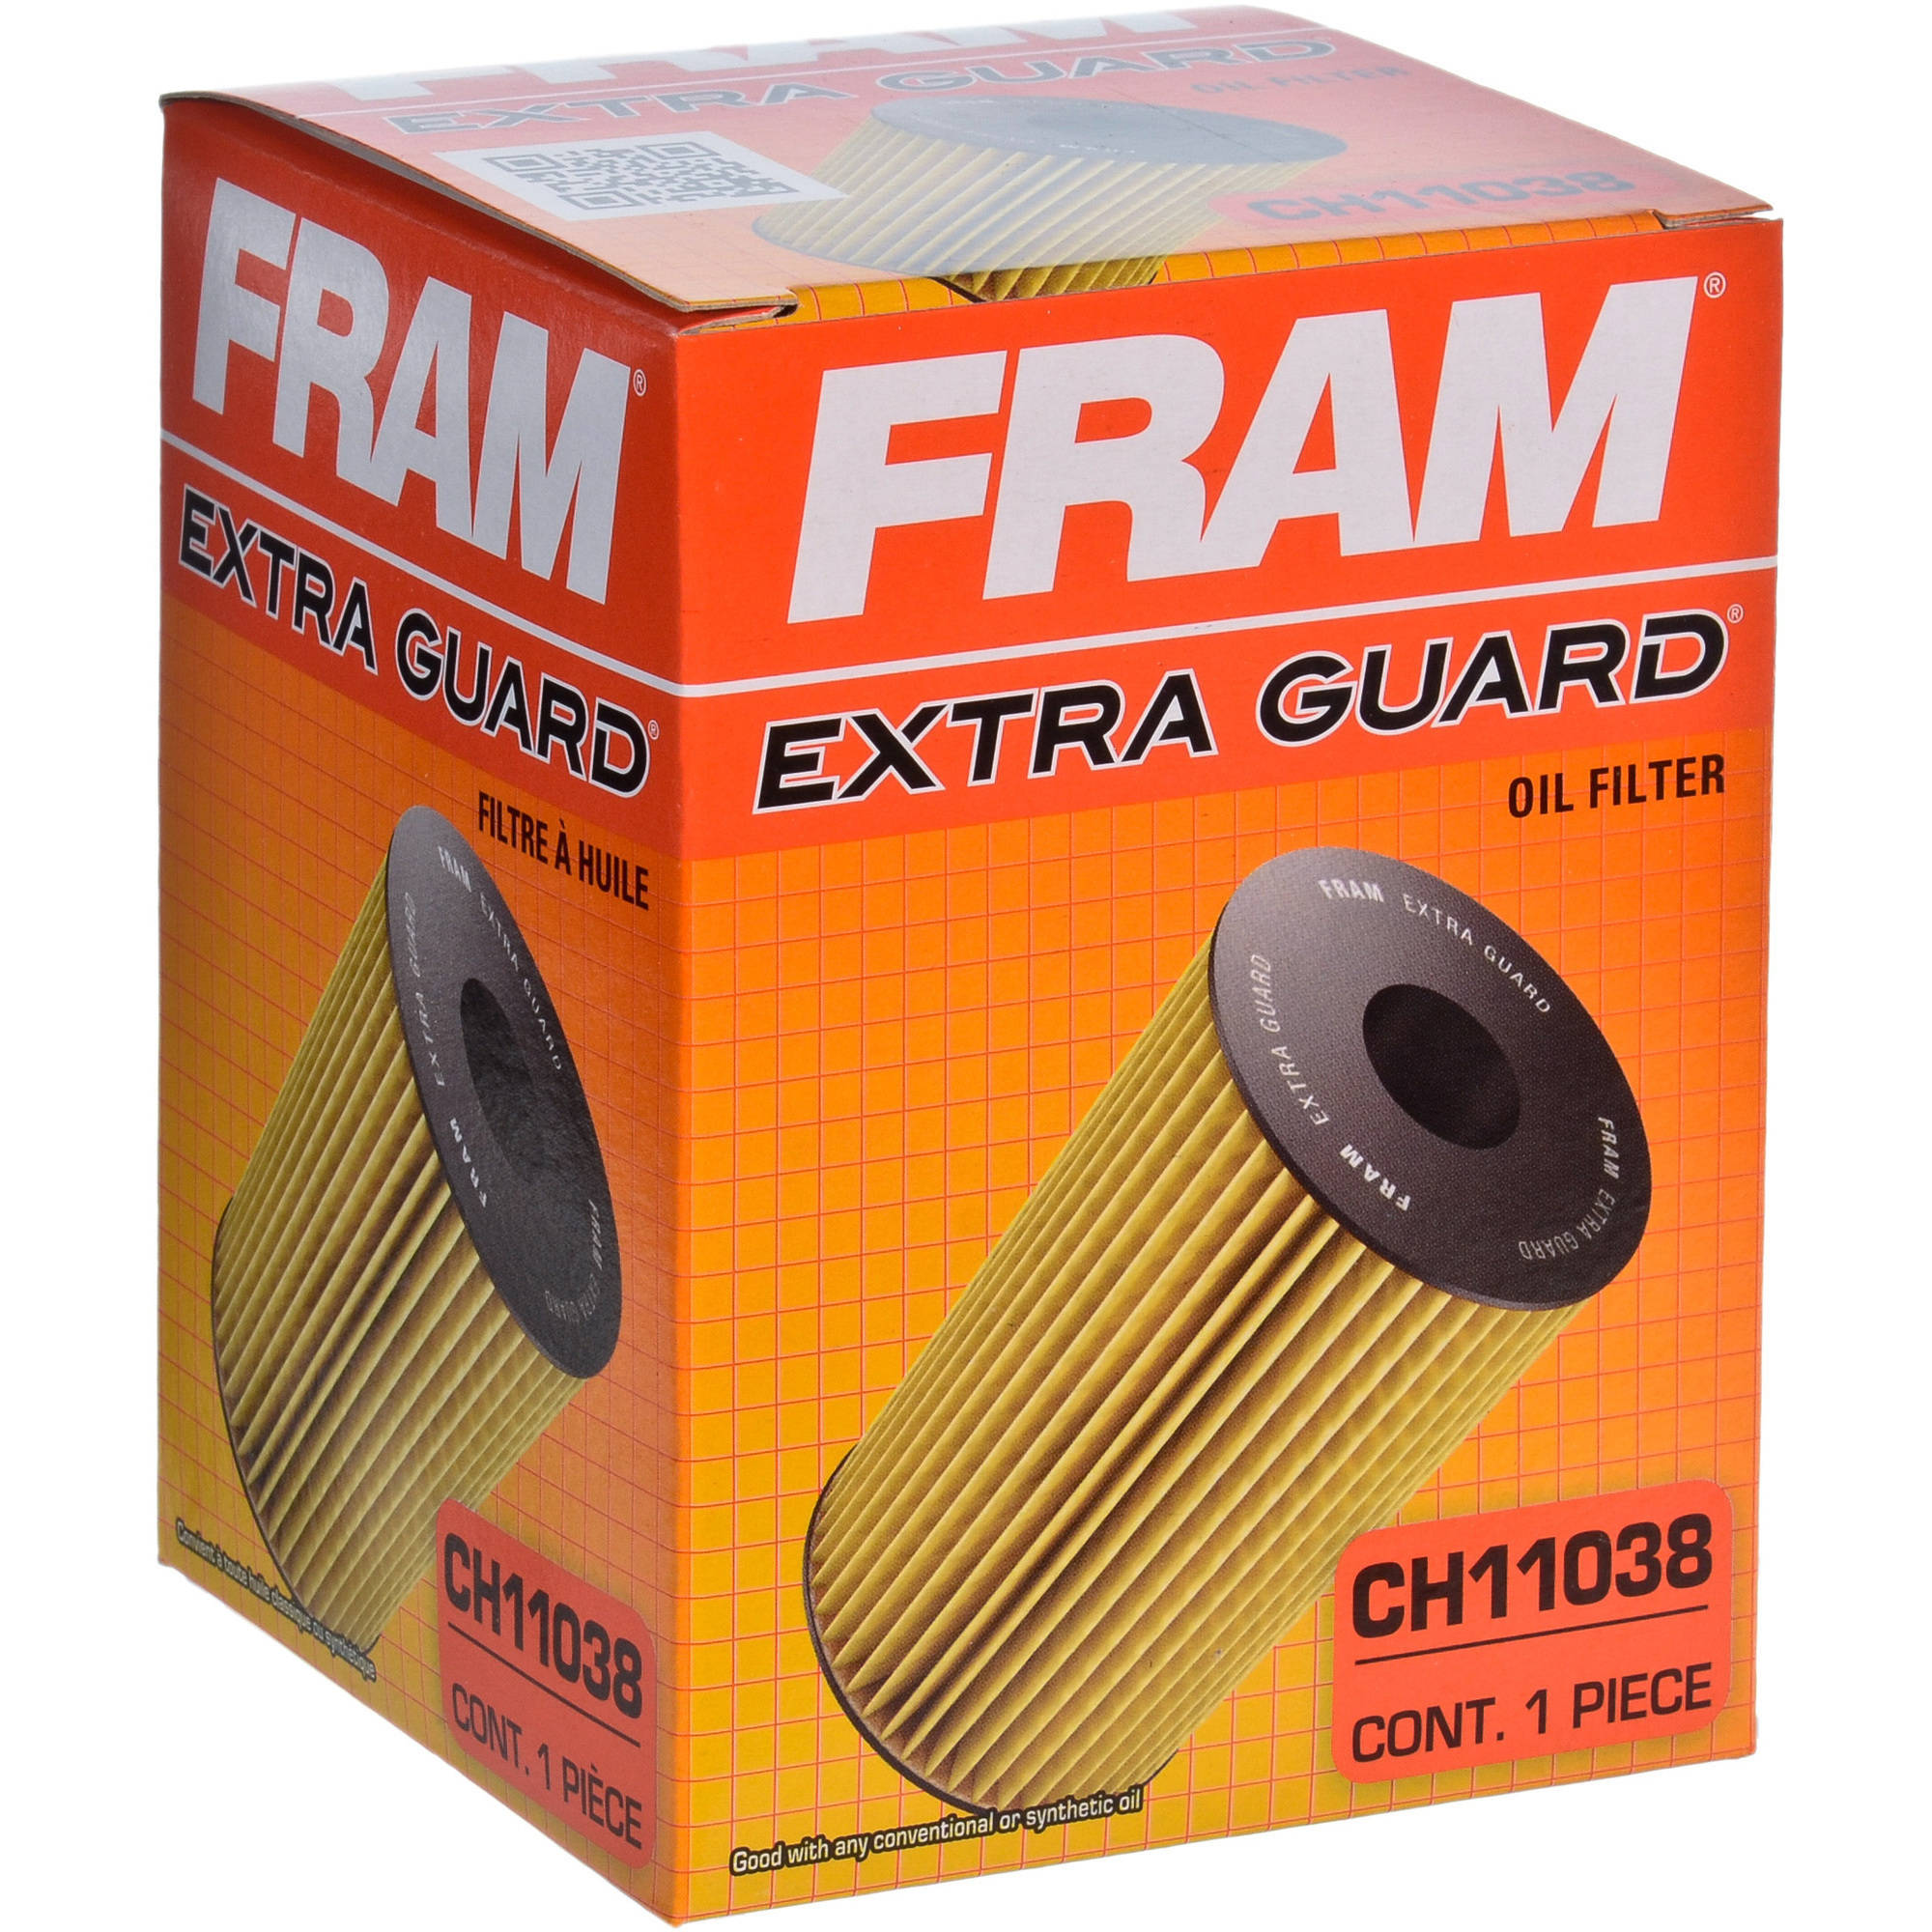 FRAM Extra Guard Oil Filter, CH11038